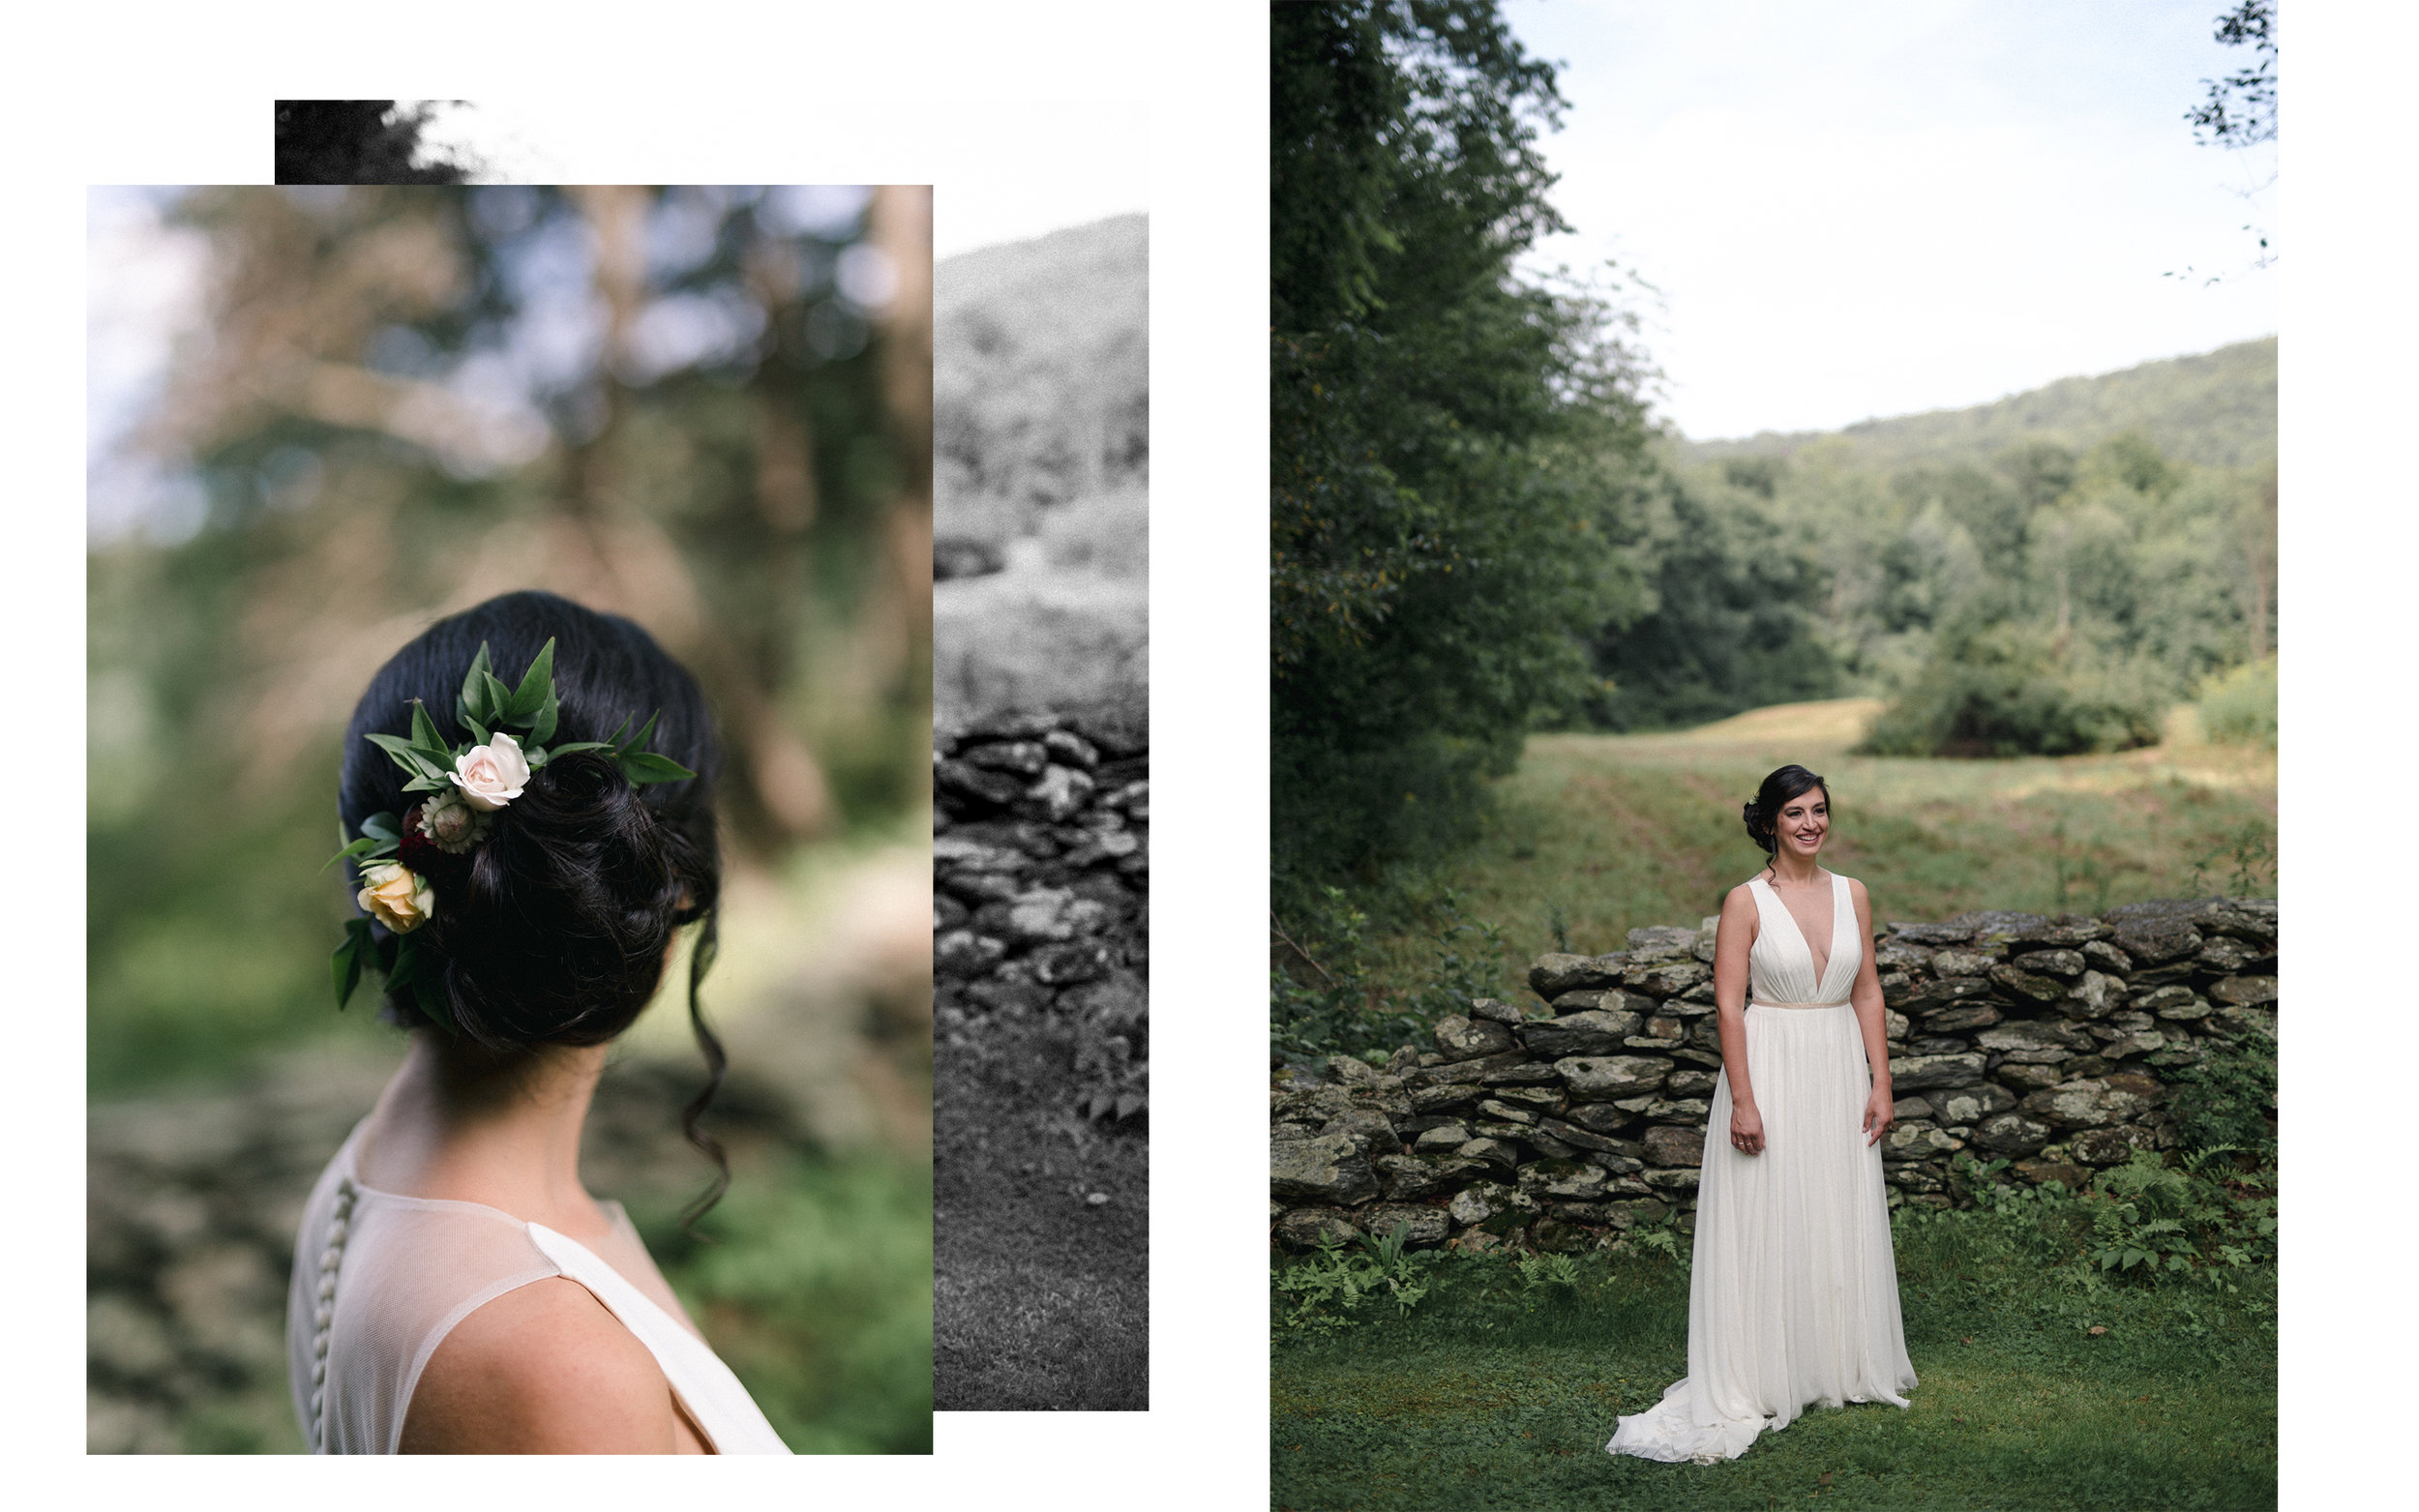 Berkshires Wedding Fine Art Wedding Photographer_Meg Haley Photographs_012.jpg